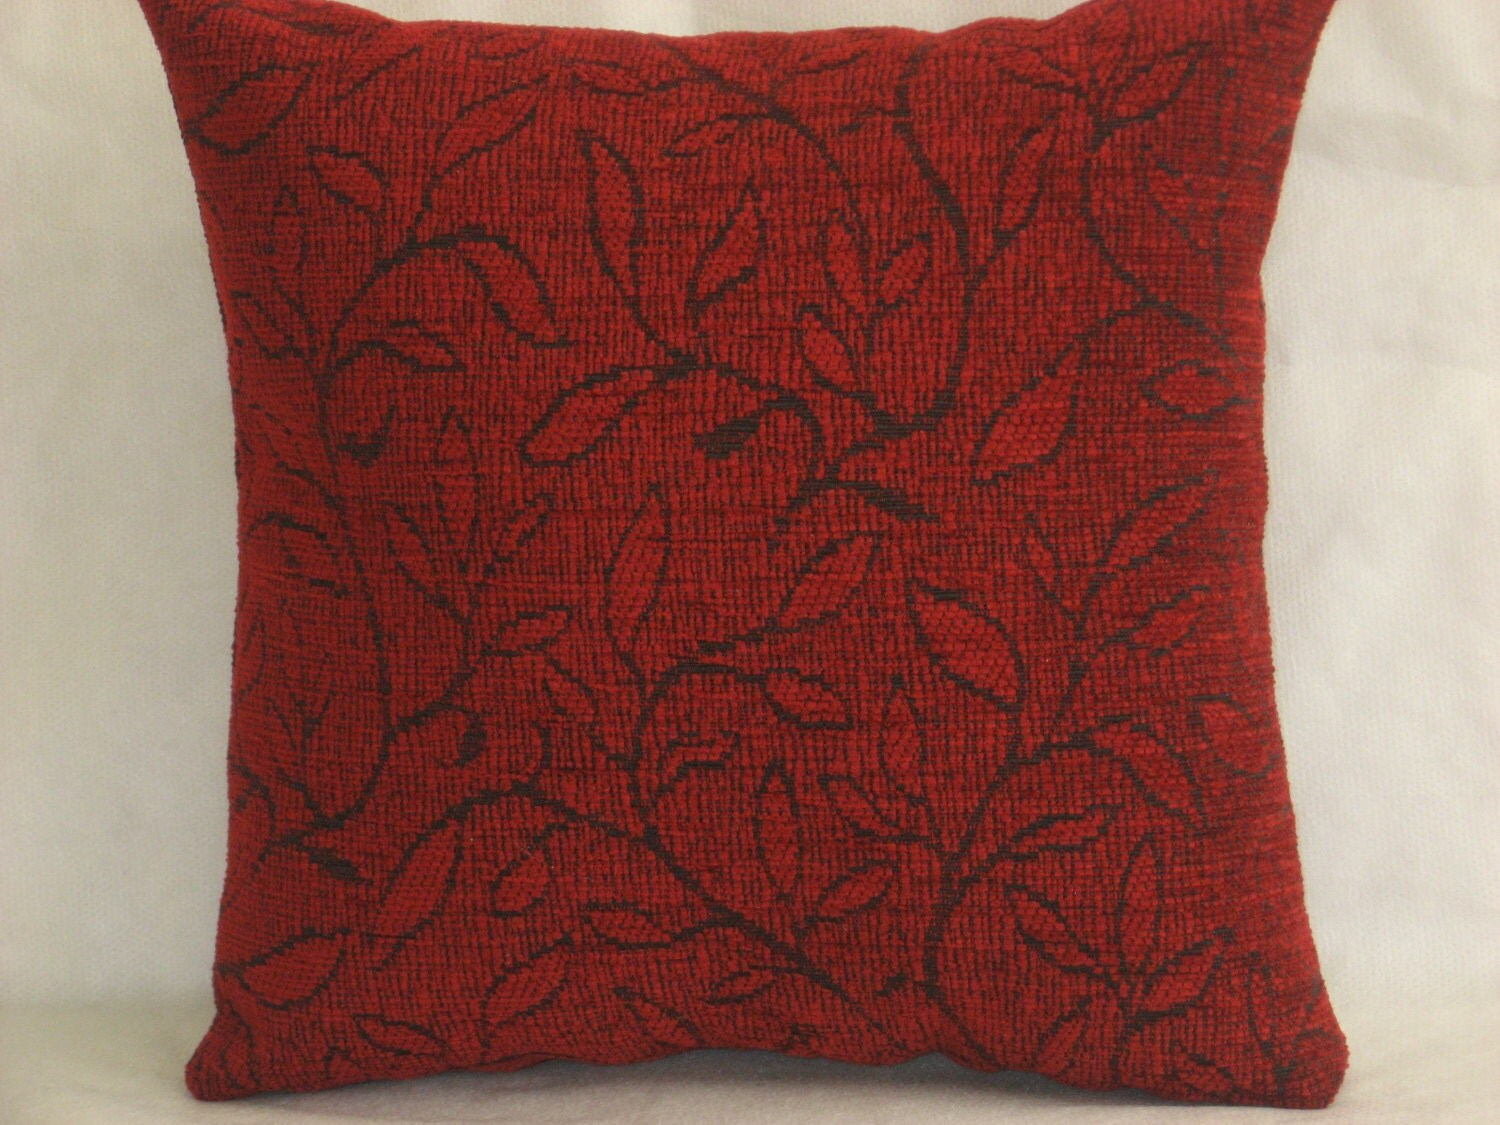 Burgundy Microfiber Throw Pillows : Burgundy dark red decorative chenille luxury